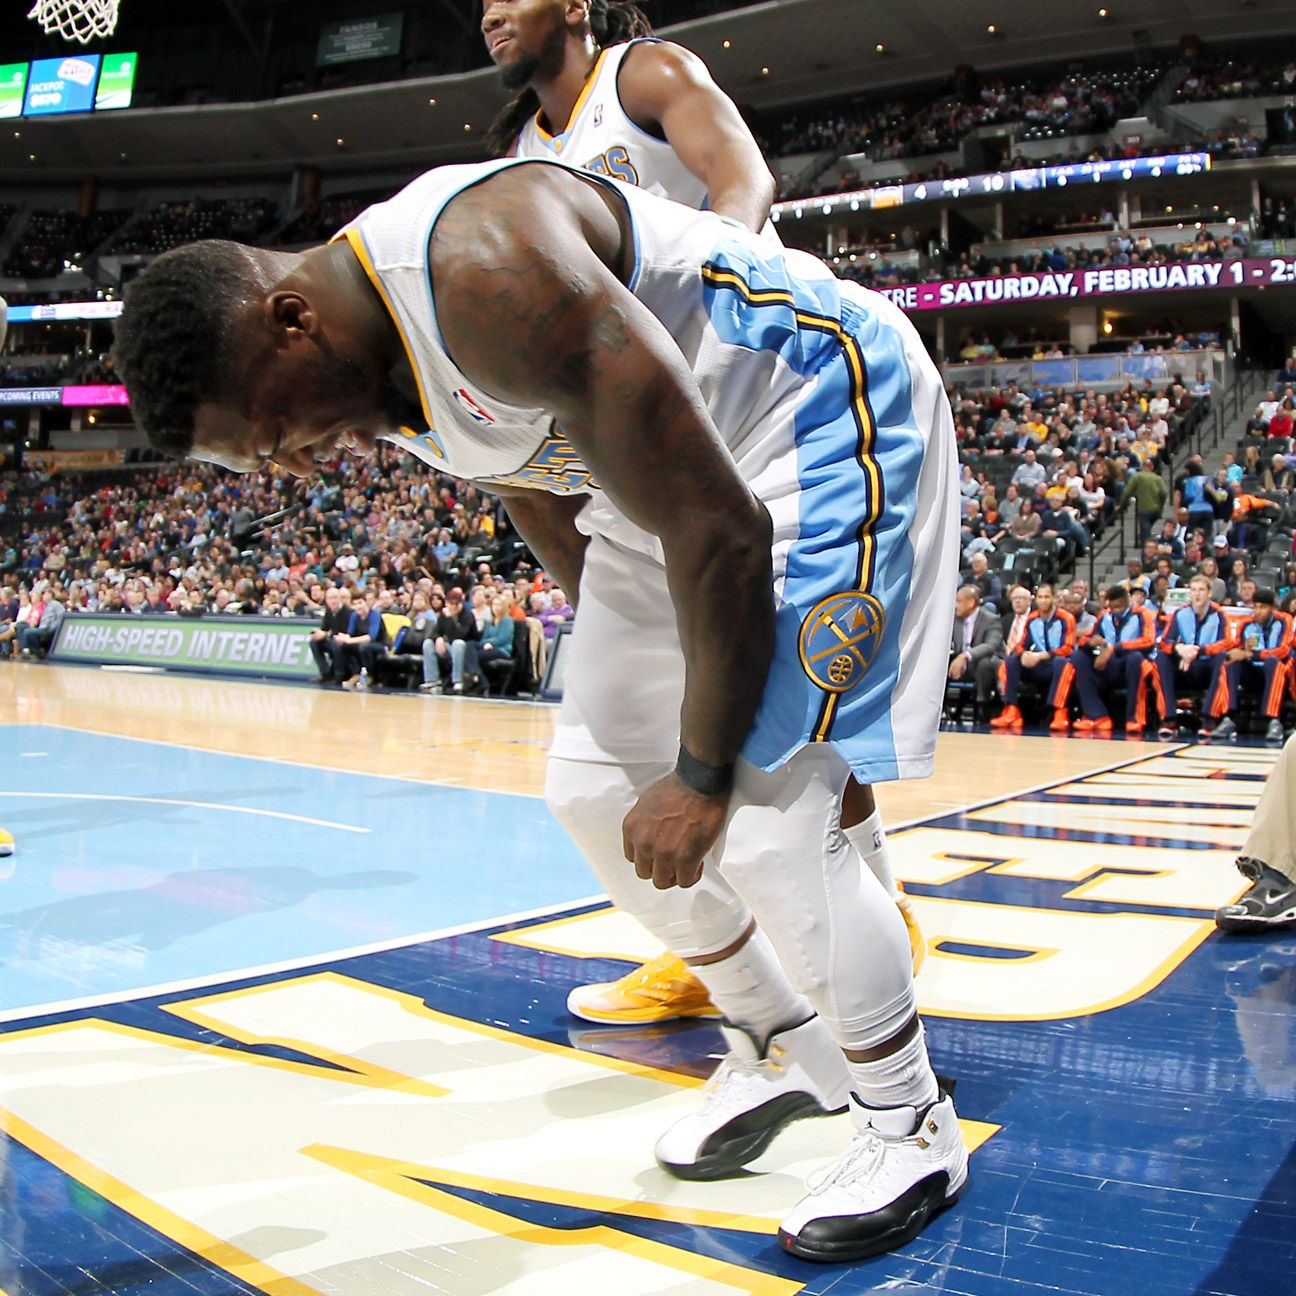 Nuggets Starting Lineup: Nate Robinson Of Denver Nuggets To Miss Rest Of Season